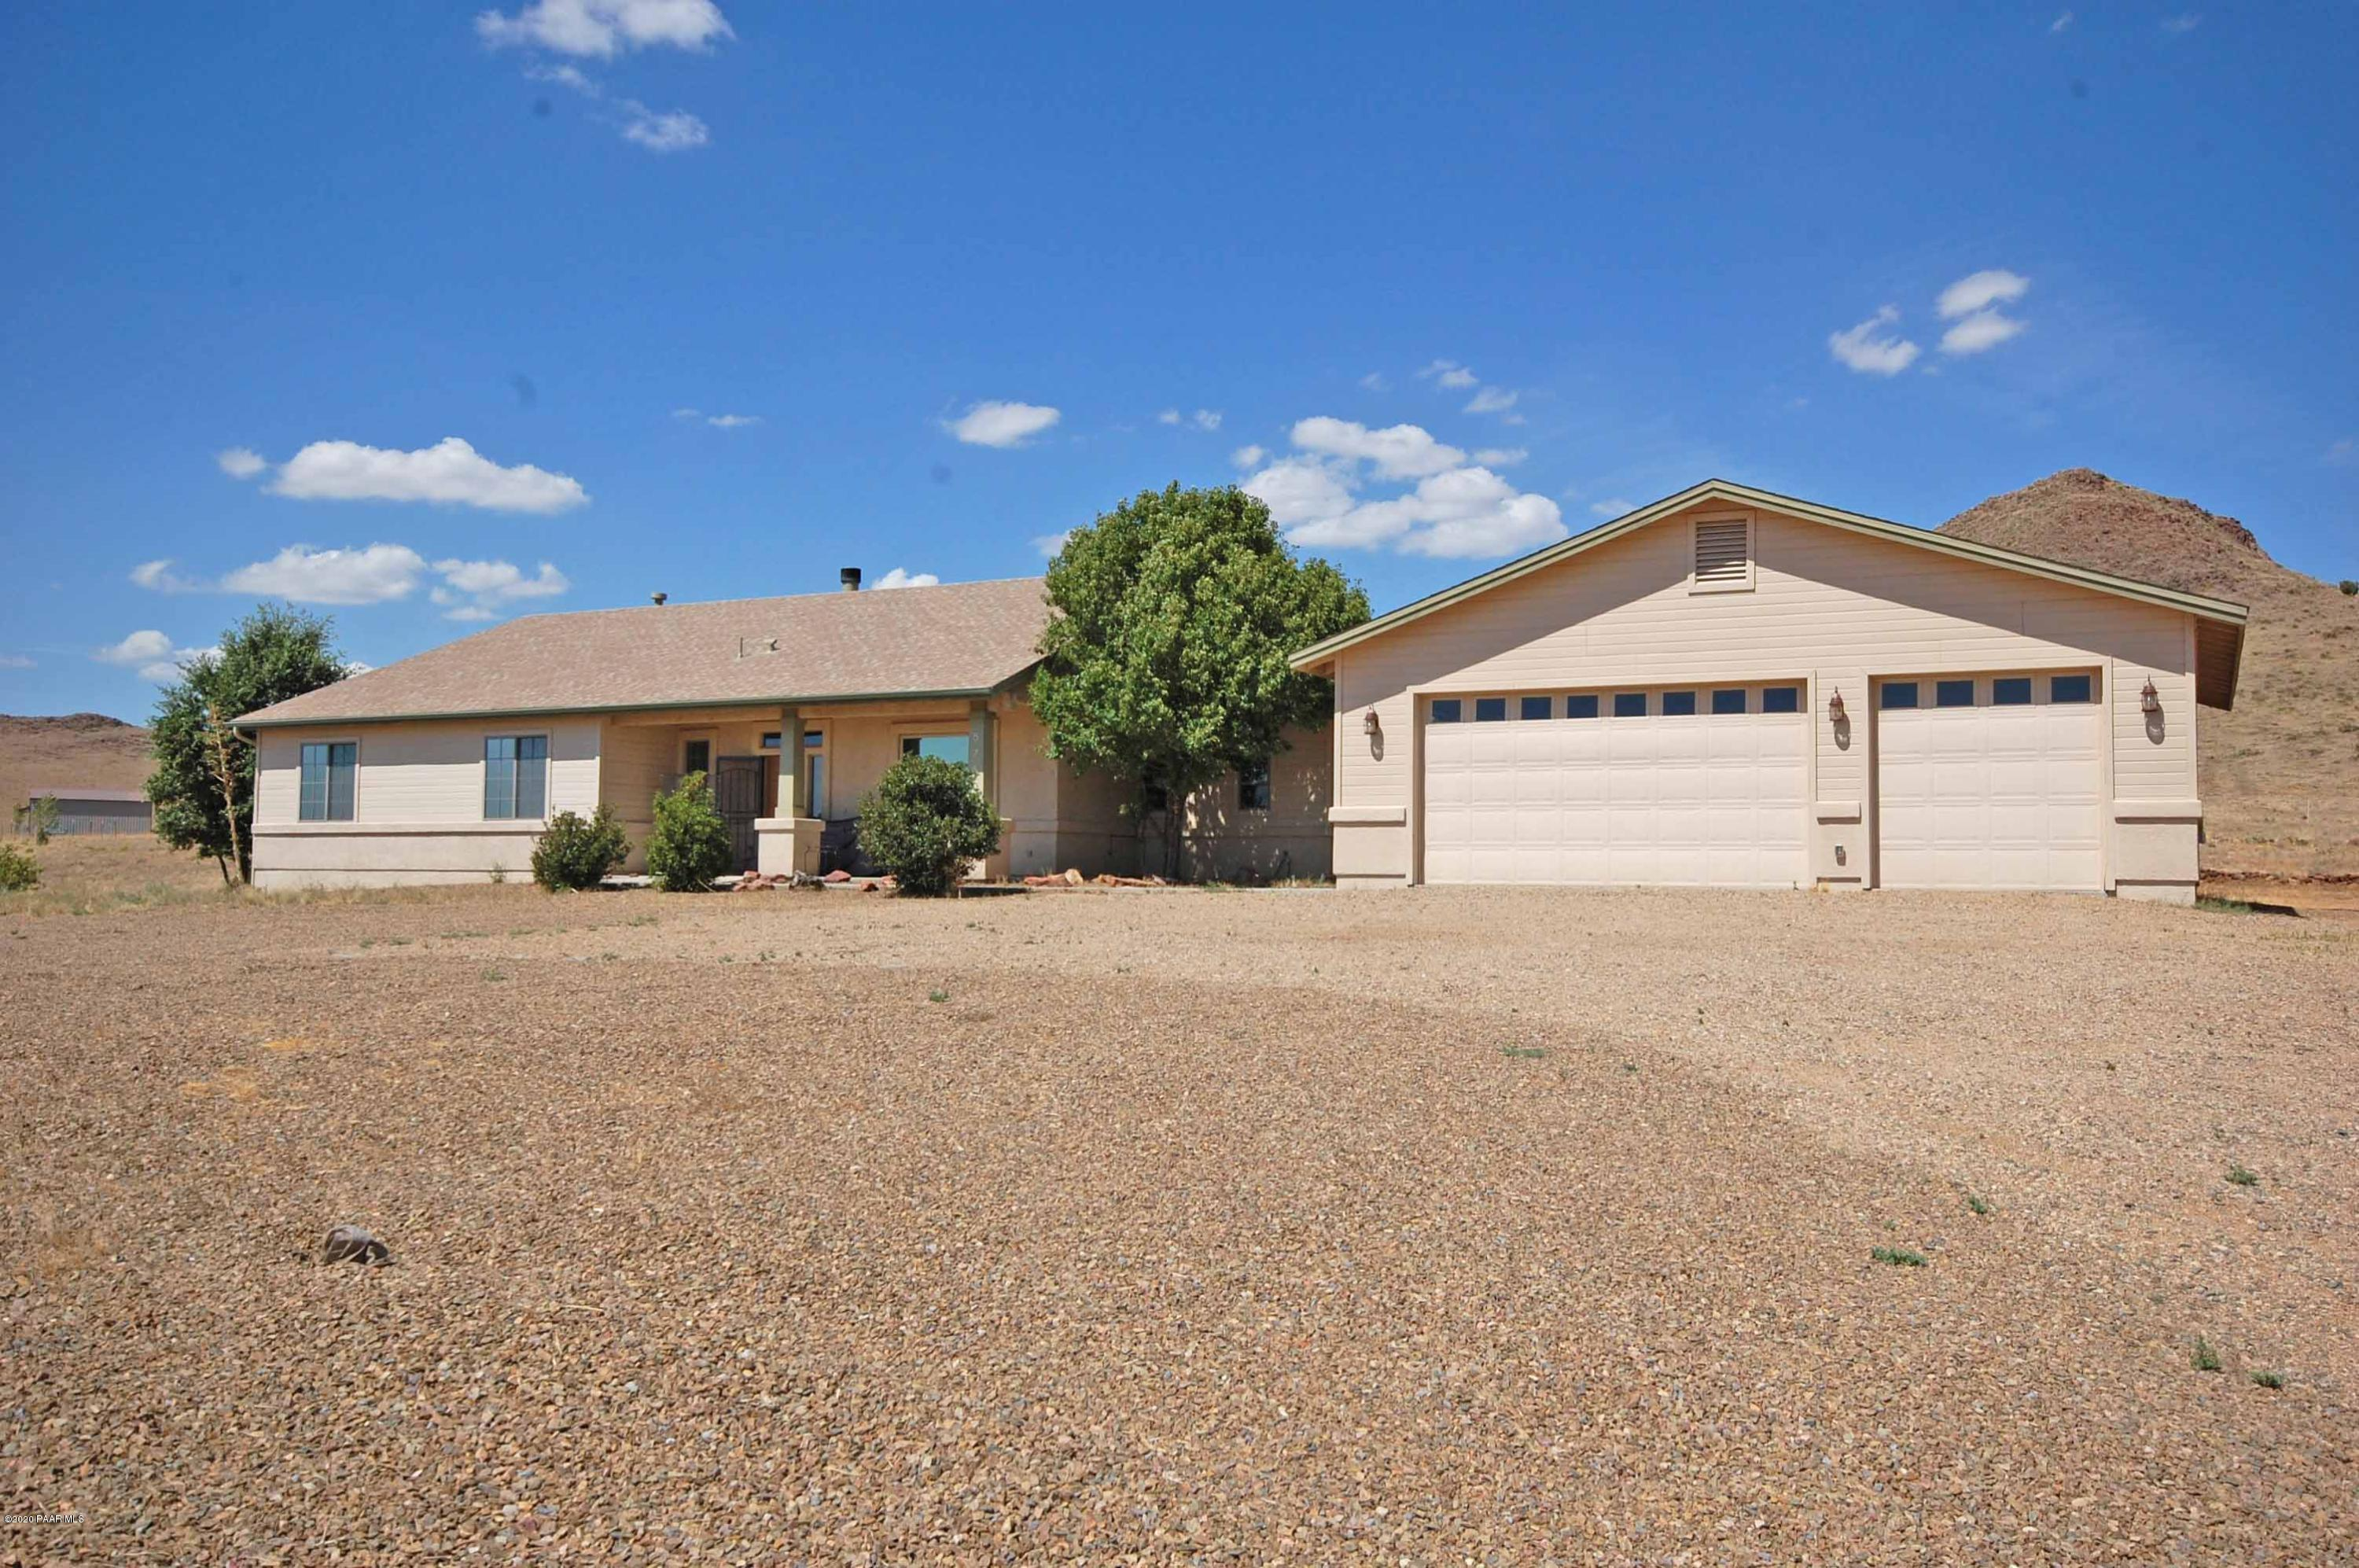 Photo of 5750 Longhorn, Chino Valley, AZ 86323